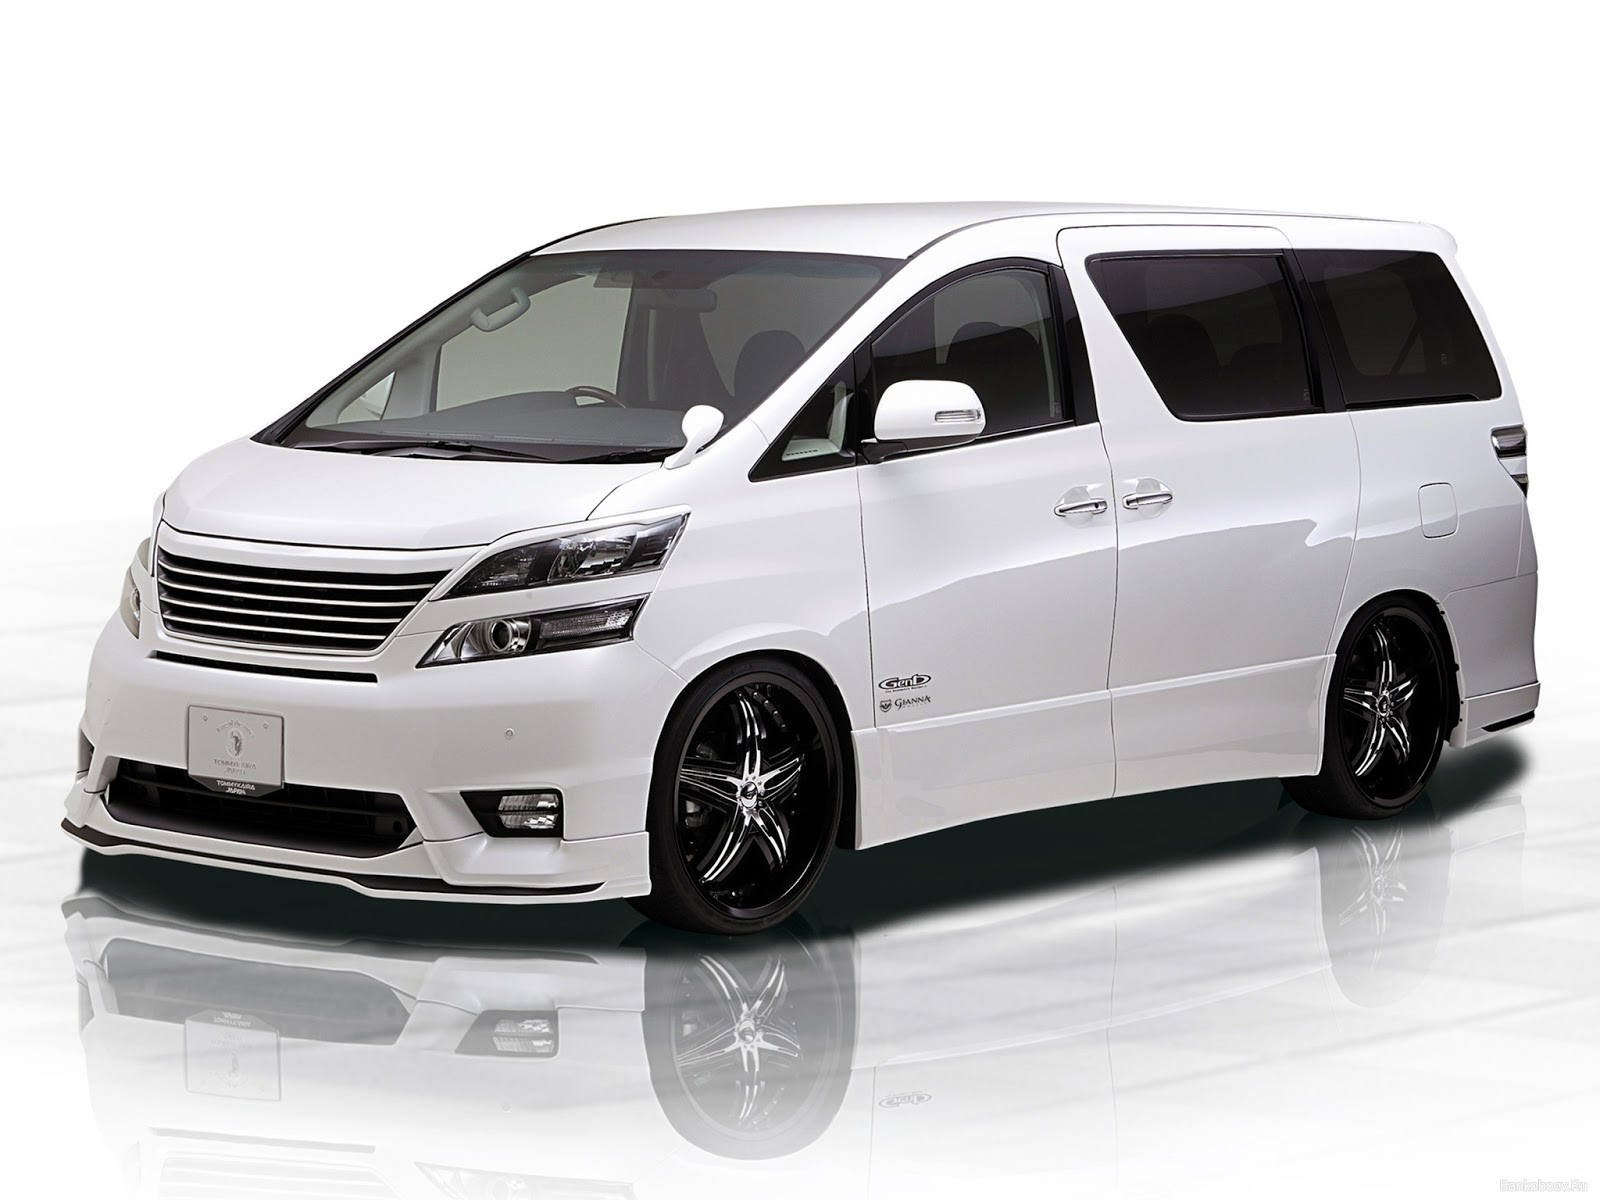 ... 2016 Toyota Vellfire 2 5 Alphard 3 5 | 2017 - 2018 Best Cars Reviews